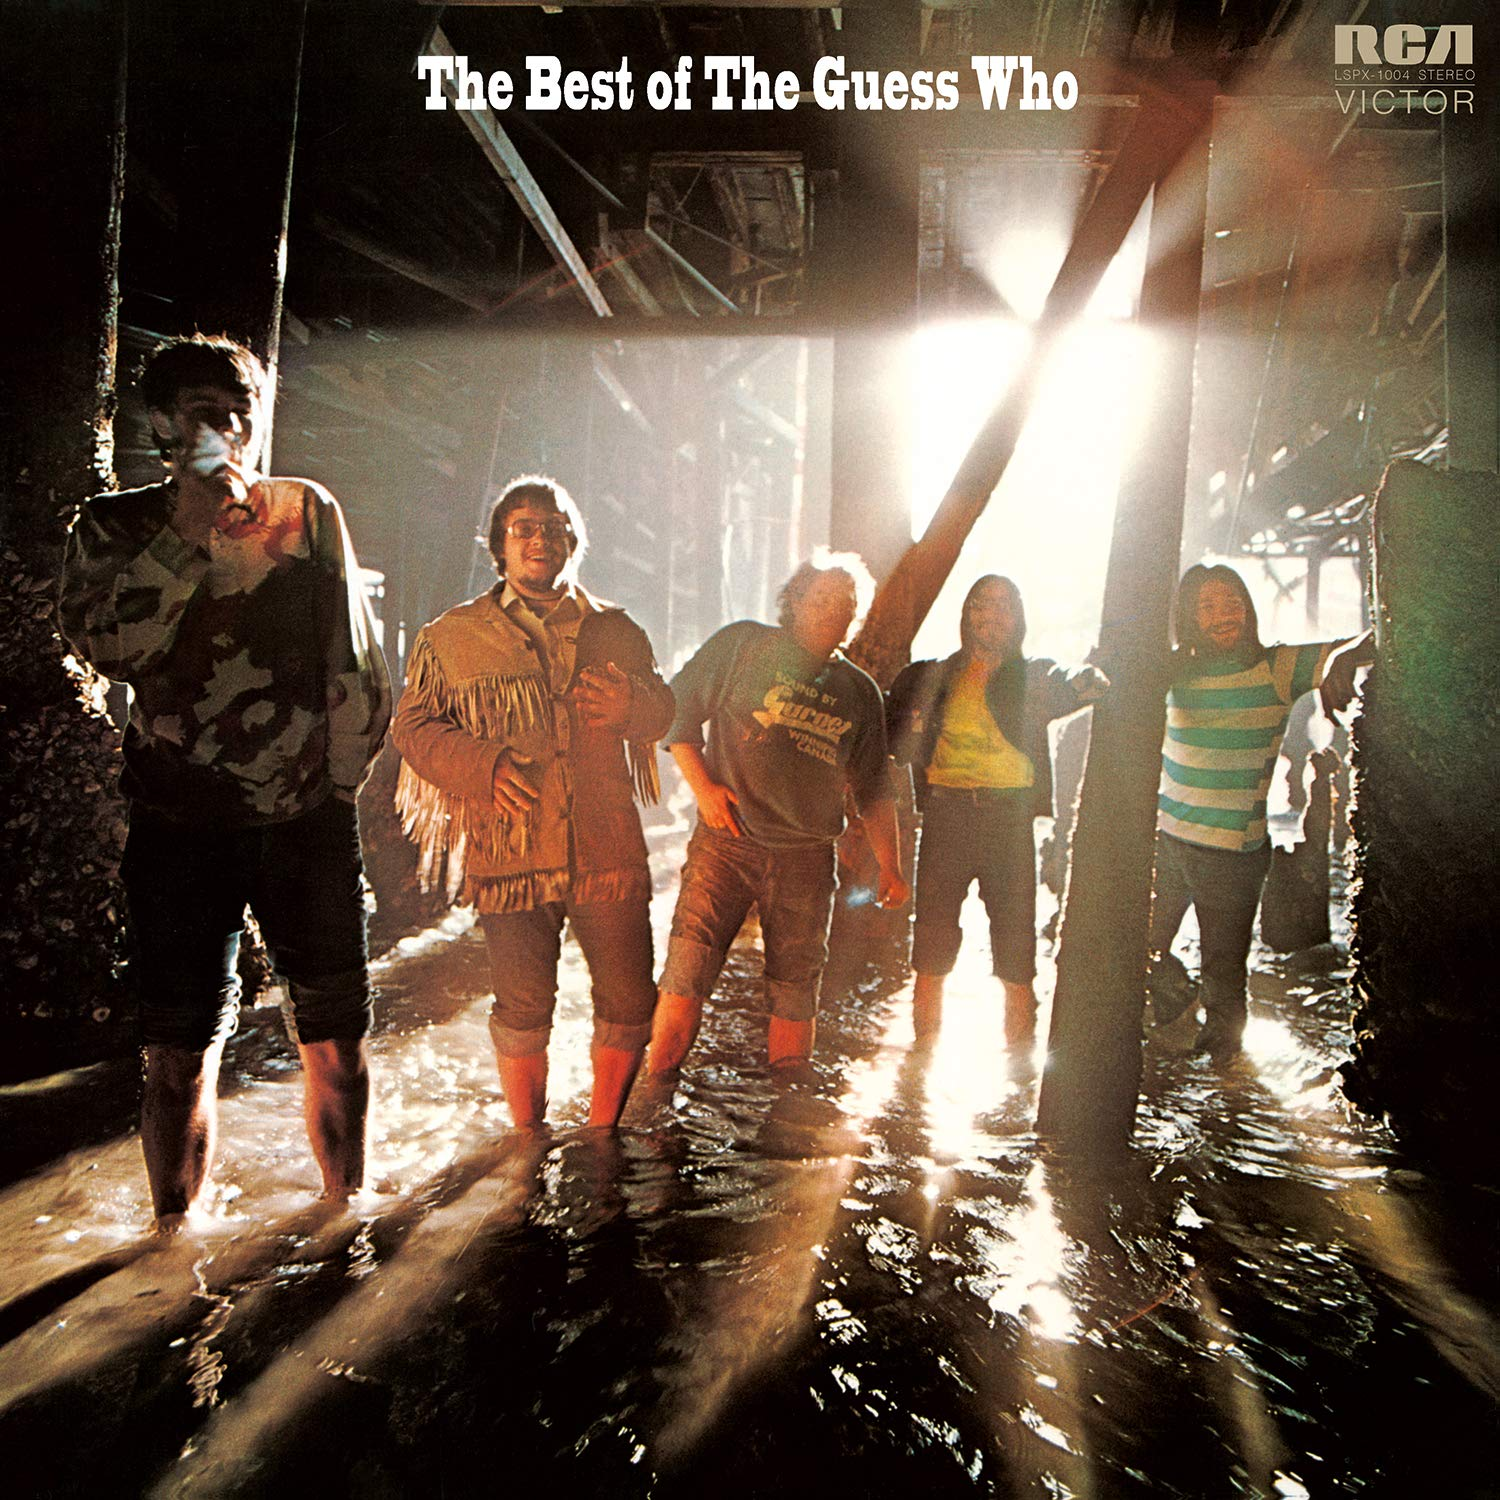 The Guess Who - Best Of The Guess Who